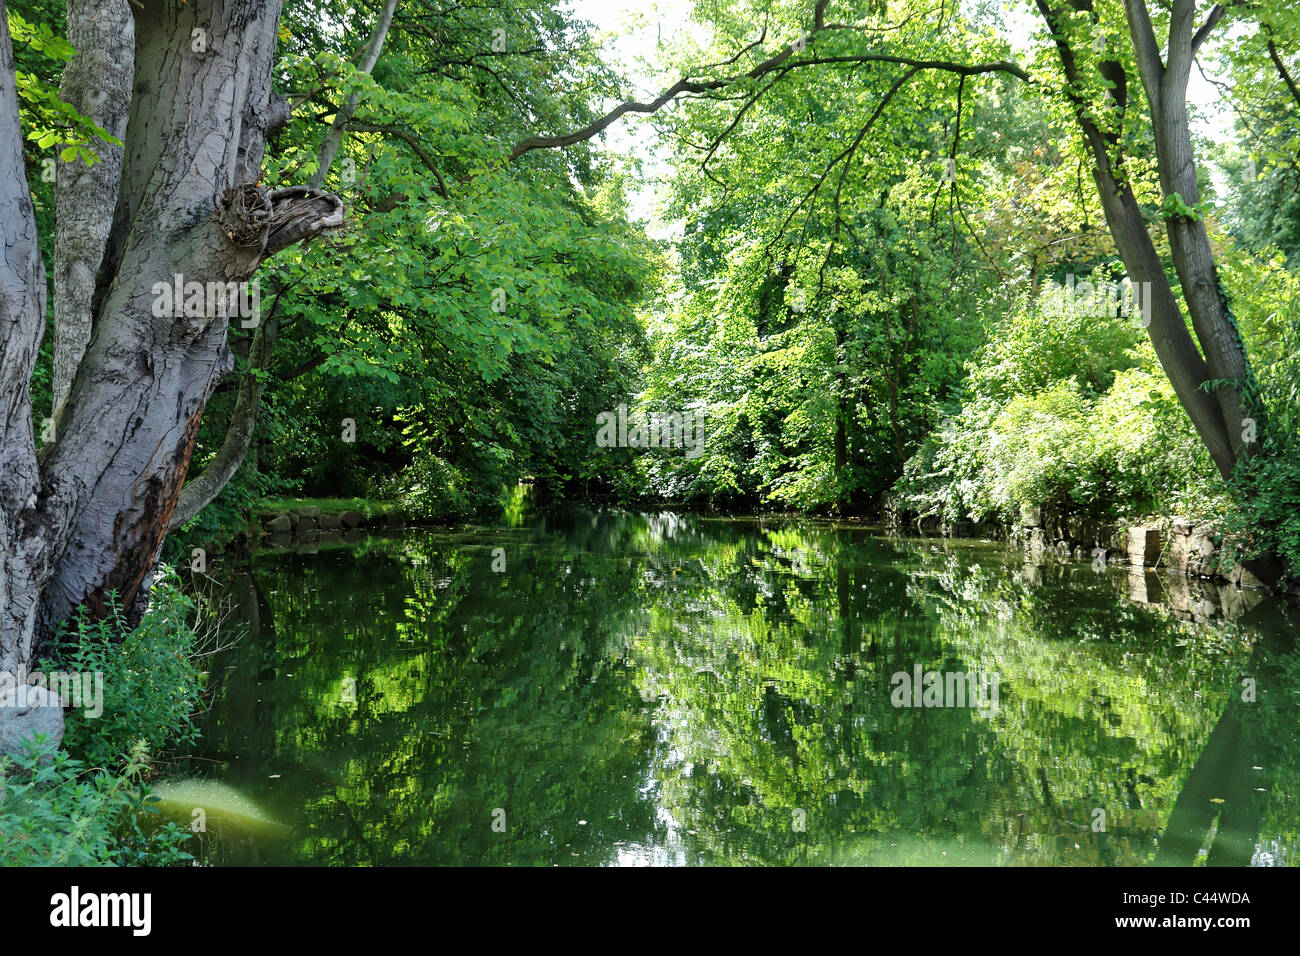 Germany, Mecklenburg-West Pomerania, Wismar, lime garden, pit, river, flow, artificially, watercourse, trees, canals, - Stock Image